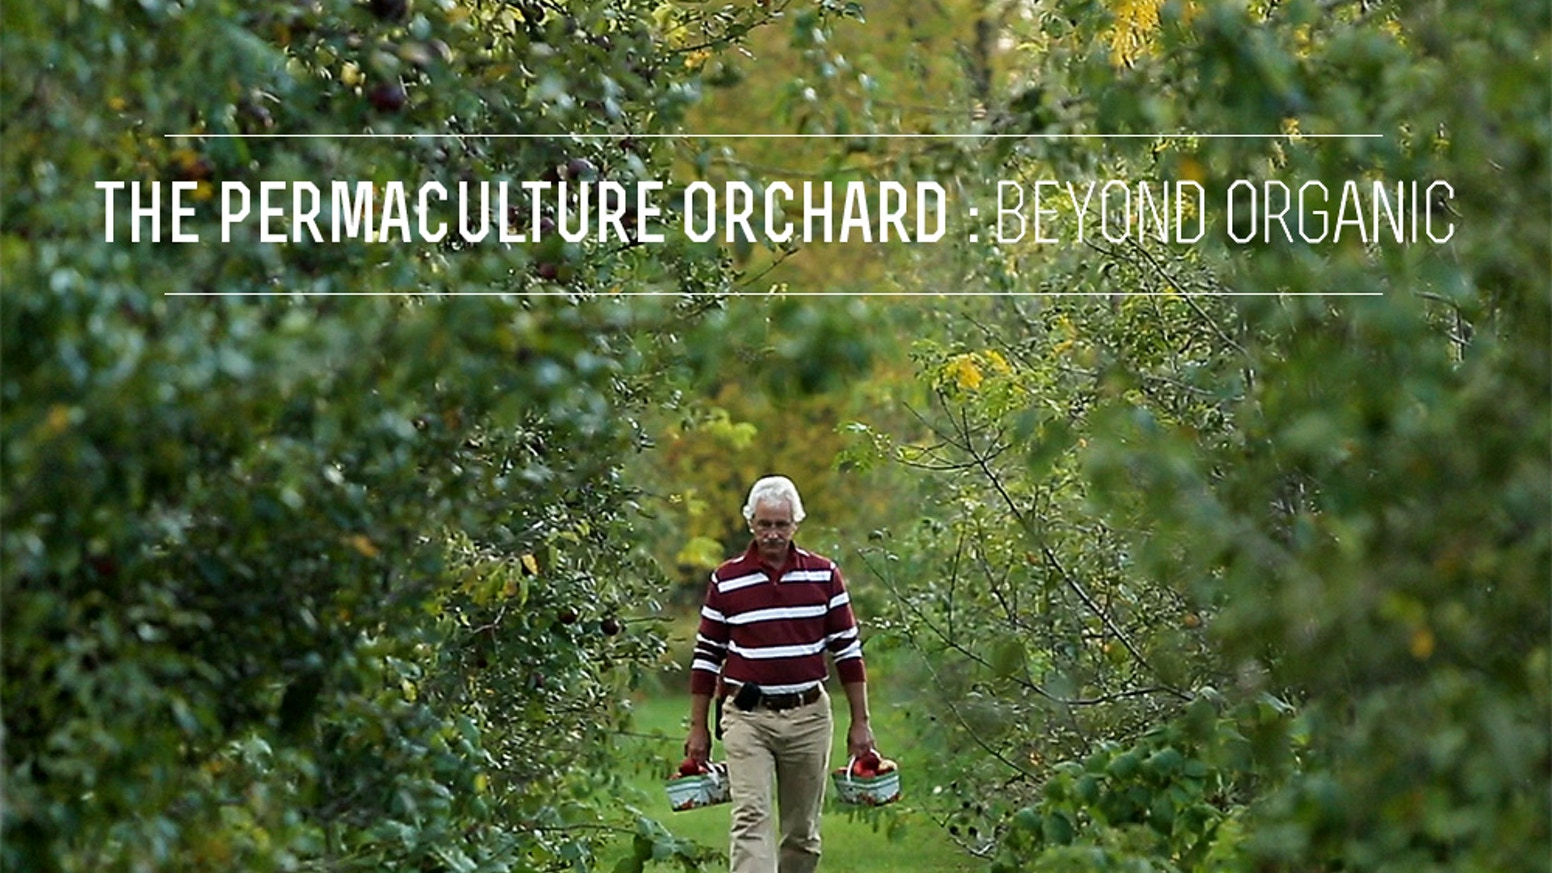 A full-length documentary film about the largest permaculture orchard in eastern North America and on the future of fruit growing